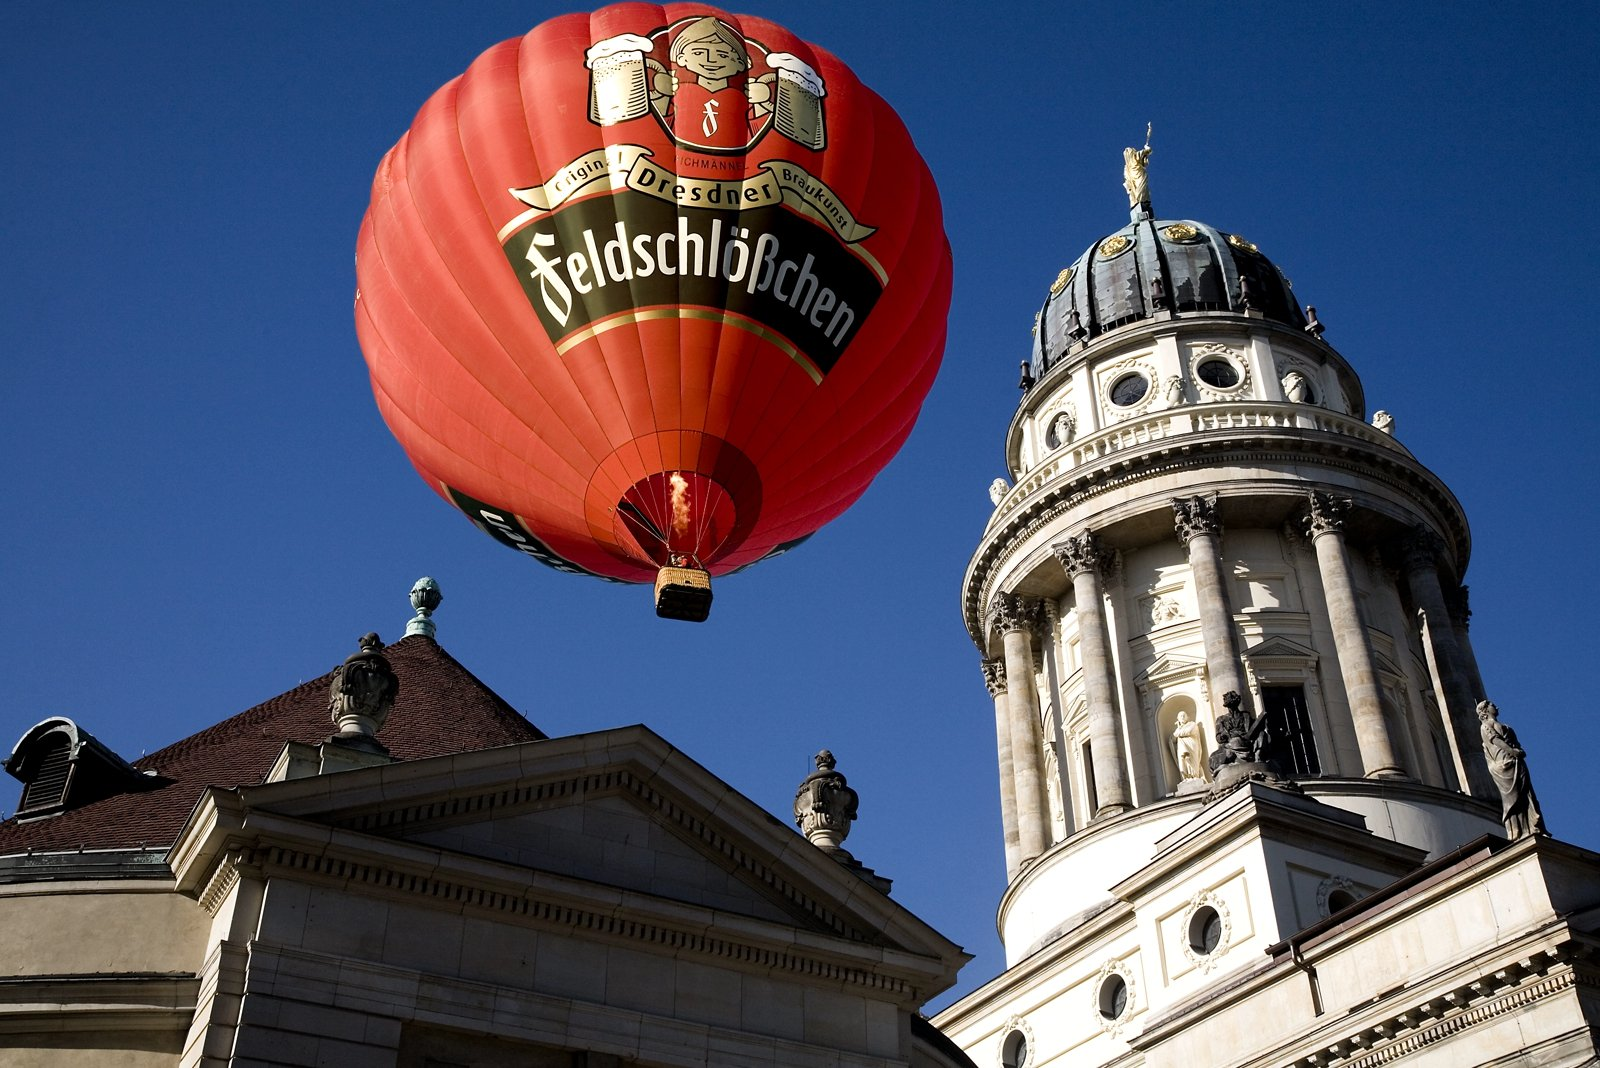 How to fly in a hot air balloon in Berlin